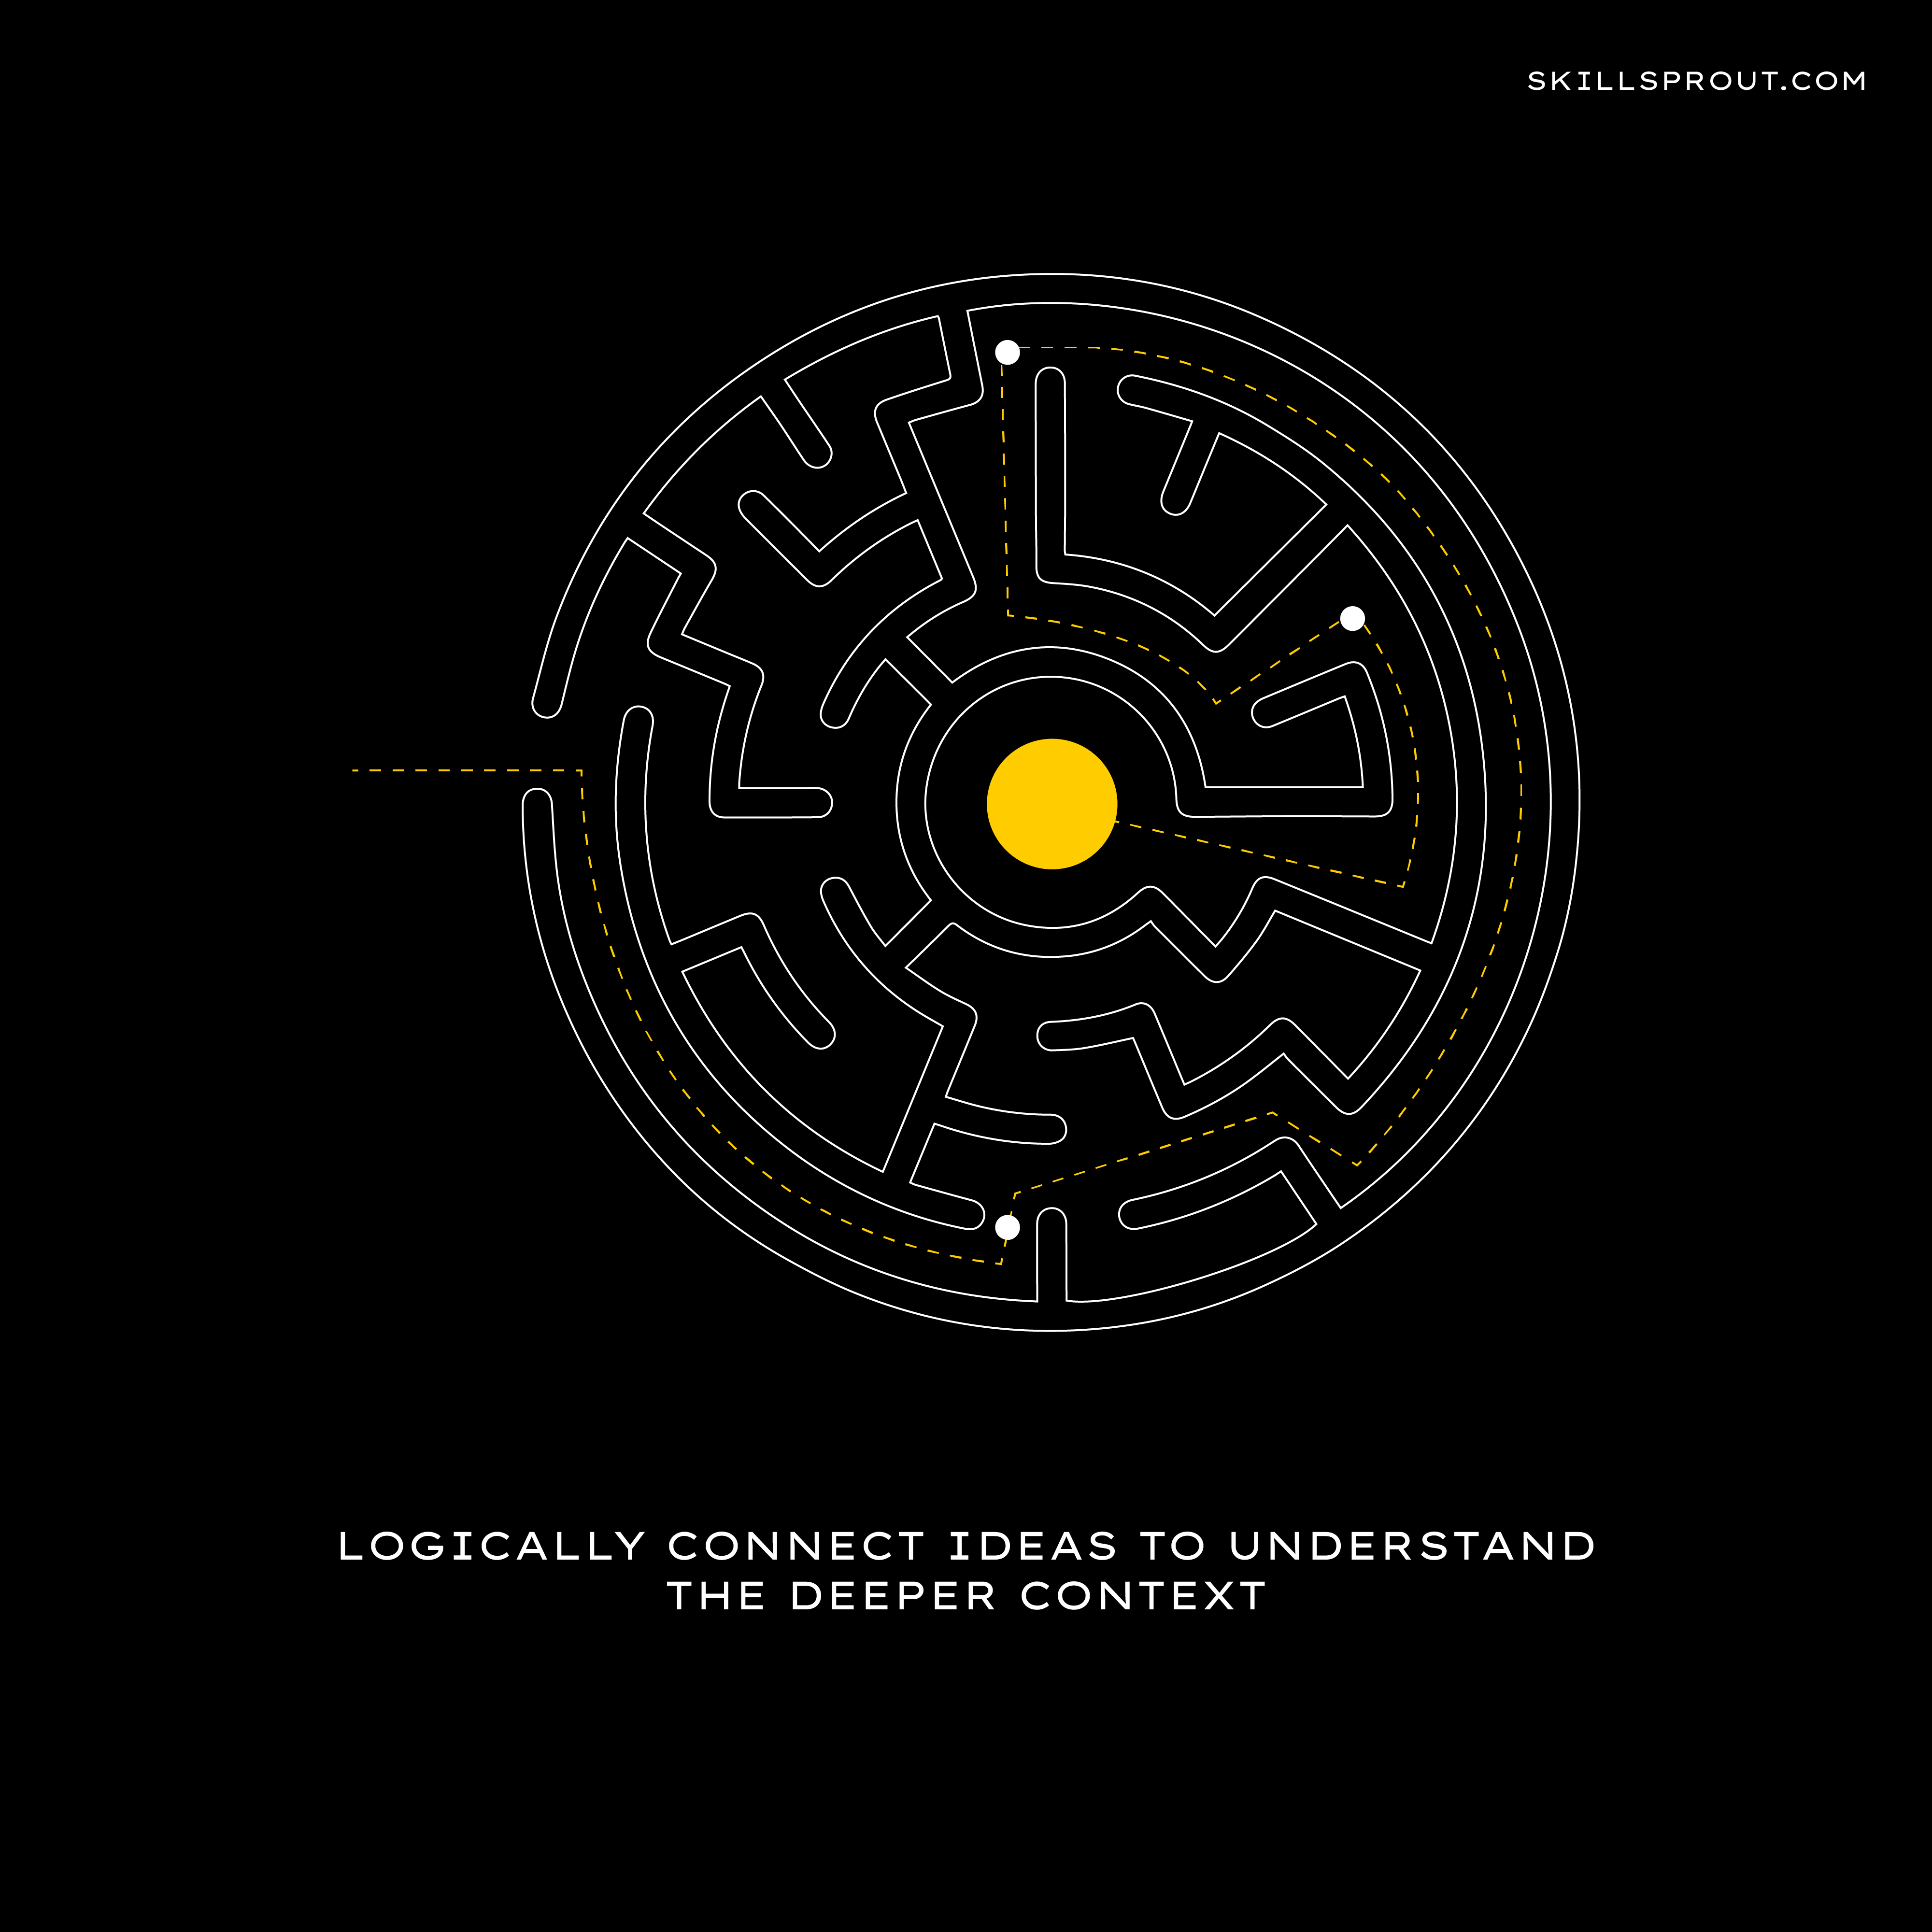 Critical thinking is logically connecting ideas to understand the deeper context.